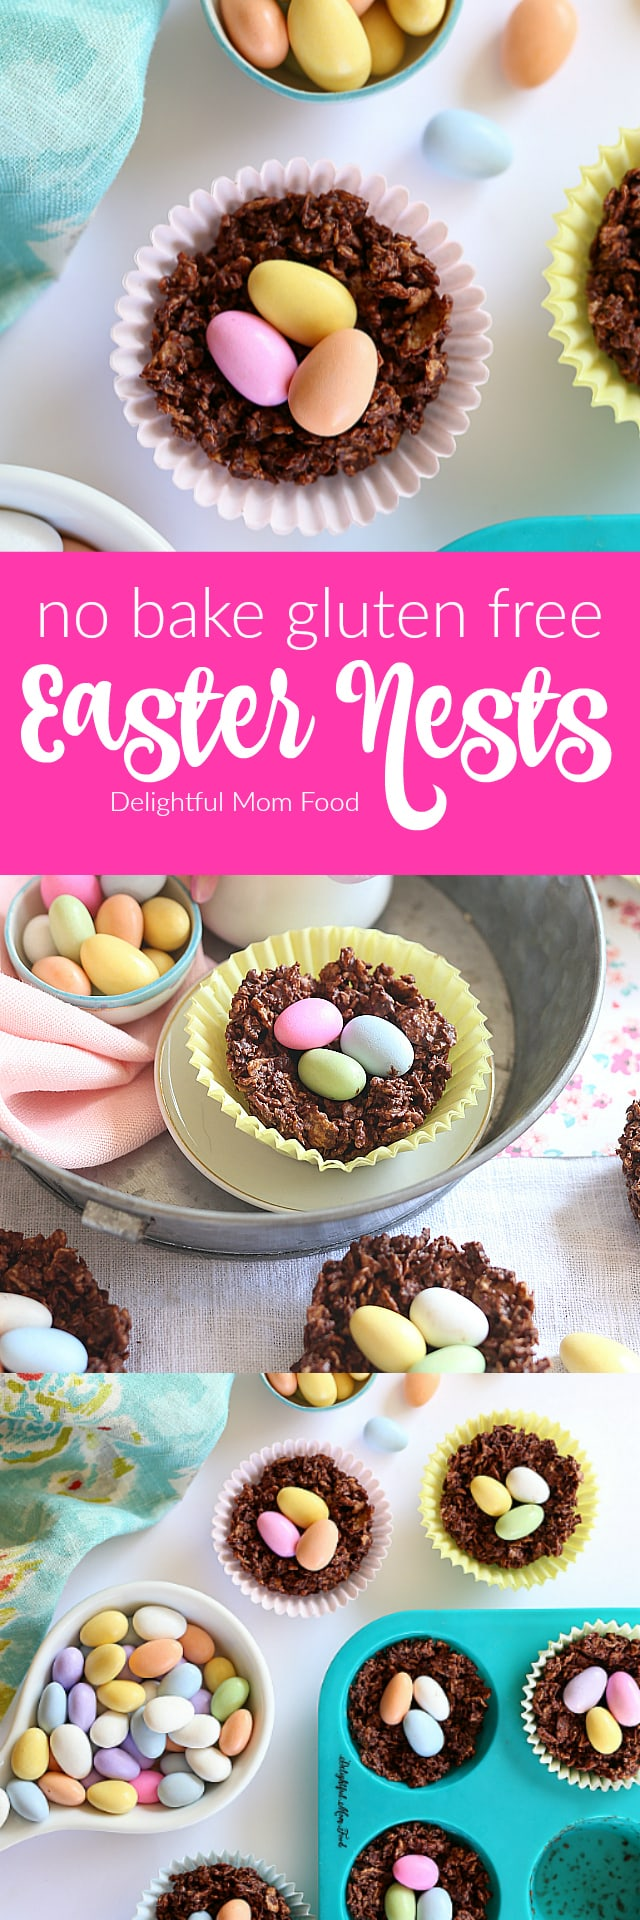 Chocolate Easter Nest Treats! Gluten Free Dairy Free Nut Free No Baking Required! | Delightful Mom Food